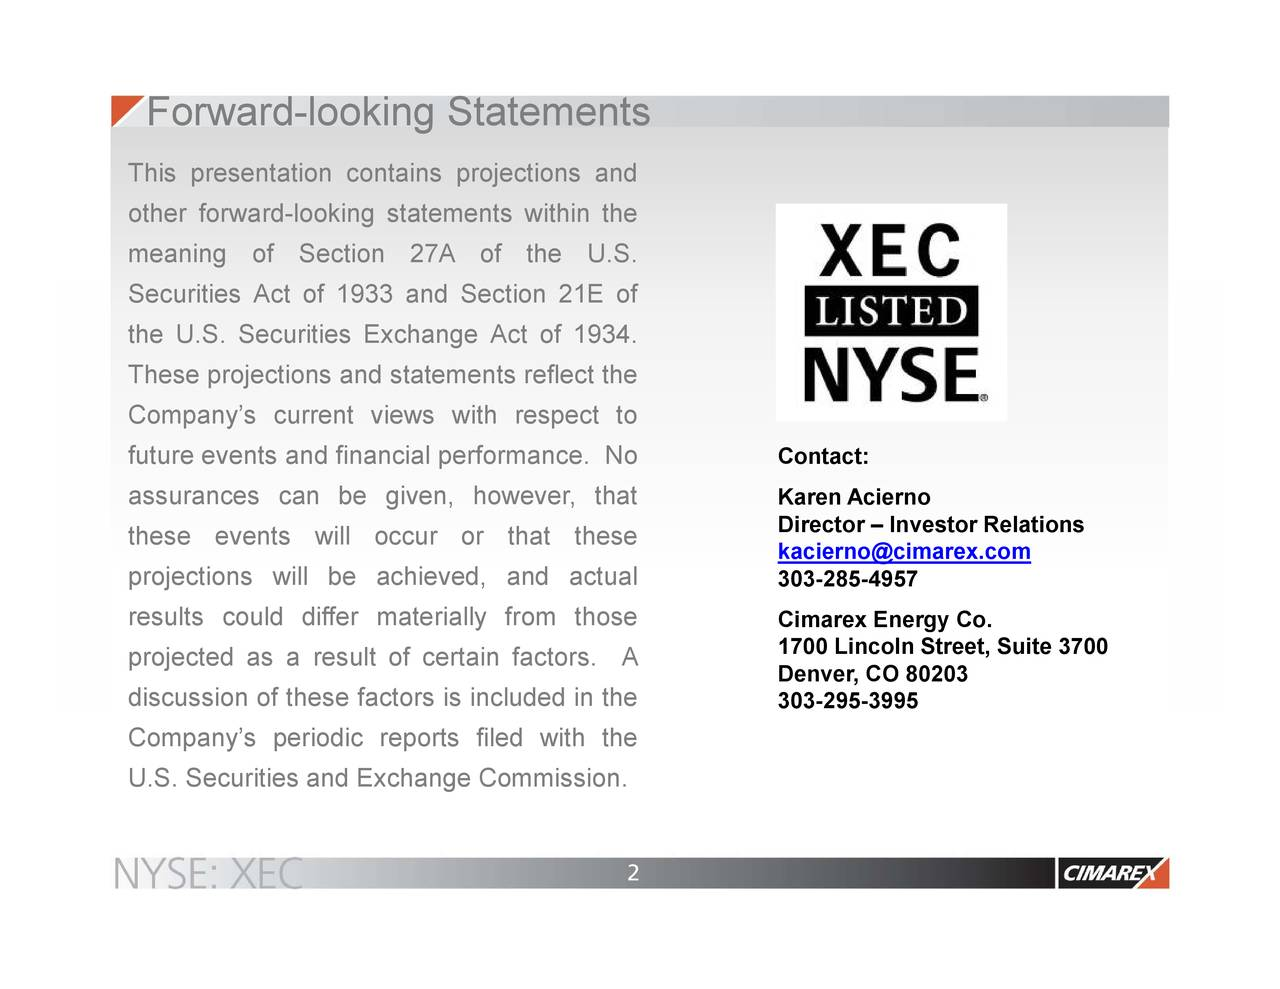 This presentation contains projections and other forward-looking statements within the meaning of Section 27A of the U.S. Securities Act of 1933 and Section 21E of the U.S. Securities Exchange Act of 1934. These projections and statements reflect the Company's current views with respect to future events and financial performance. No Contact: assurances can be given, however, that Karen Acierno these events will occur or that these Director – Investor Relations kacierno@cimarex.com projections will be achieved, and actual 303-285-4957 results could differ materially from those Cimarex Energy Co. 1700 Lincoln Street, Suite 3700 projected as a result of certain factors.A Denver, CO 80203 discussion of these factors is included in the 303-295-3995 Company's periodic reports filed with the U.S. Securities and Exchange Commission. 2